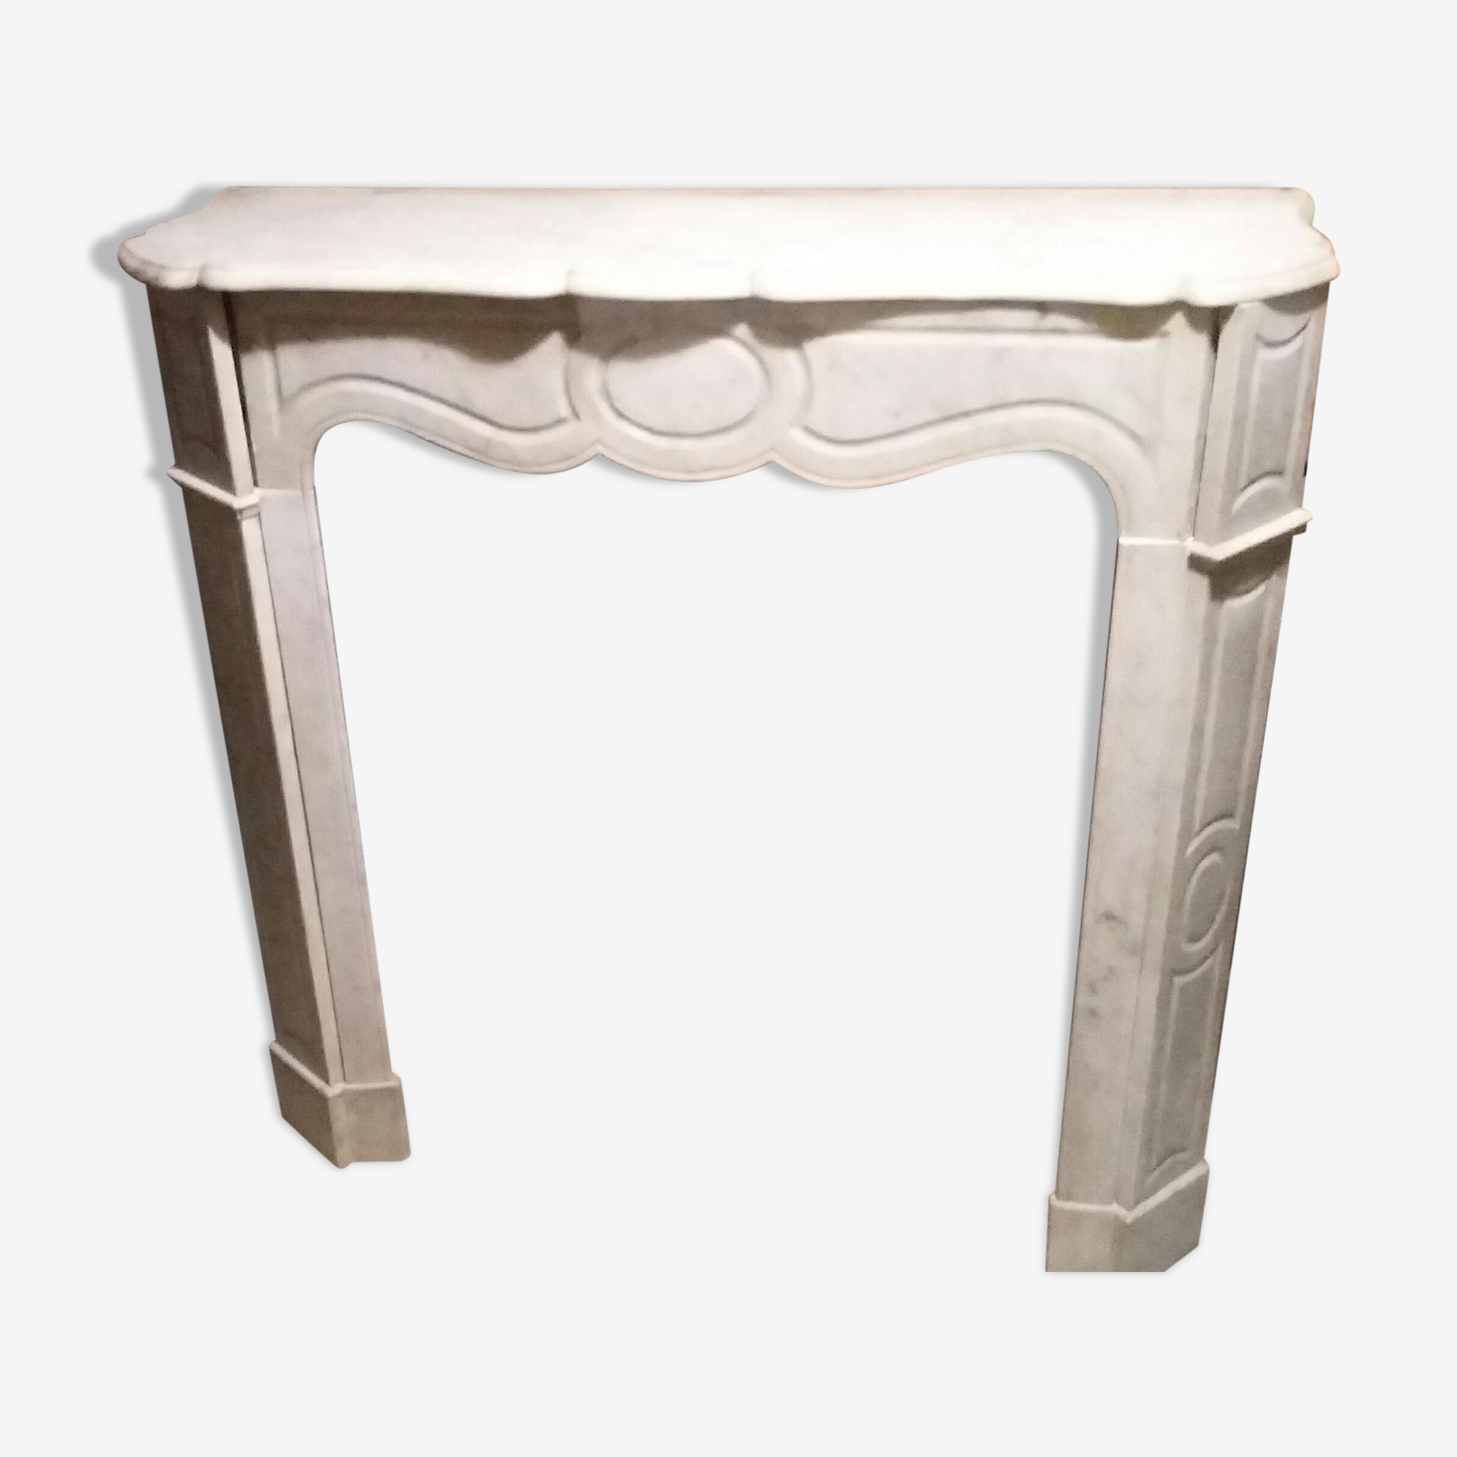 Pompadour fireplace in marble of carrara